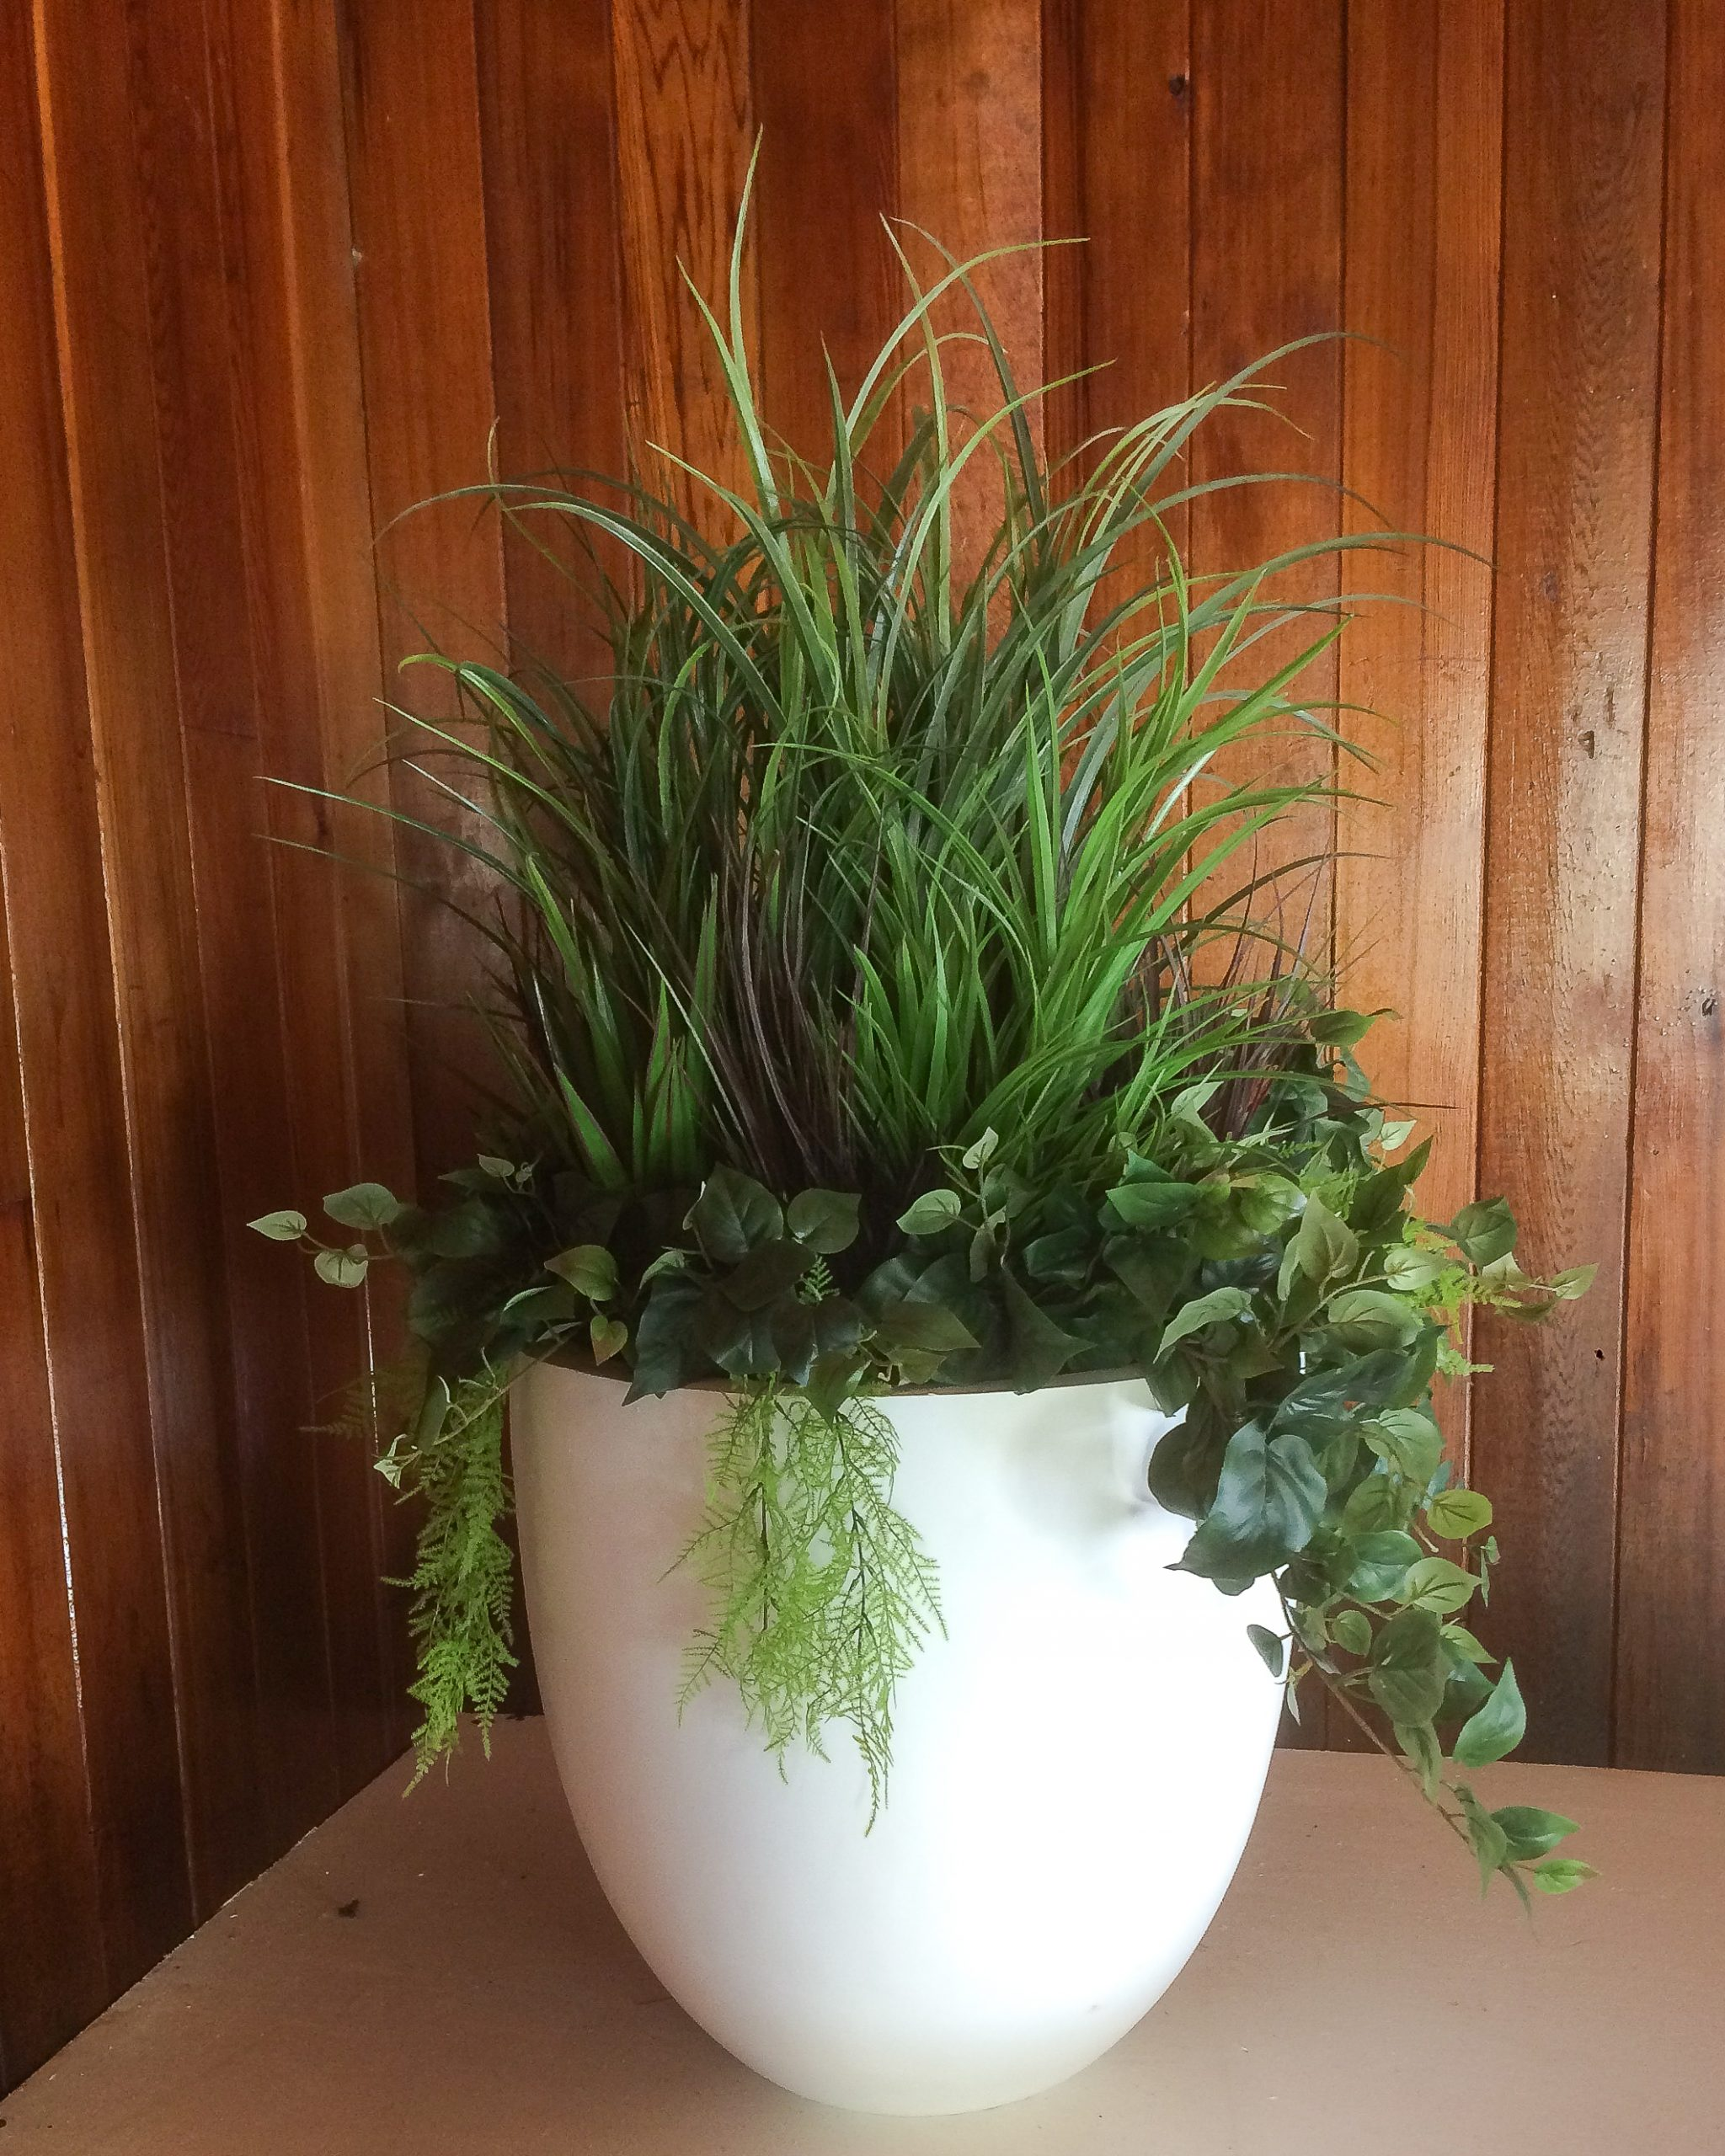 Large white round fibreglass planter with grasses and mixed greenery, wood paneling background.